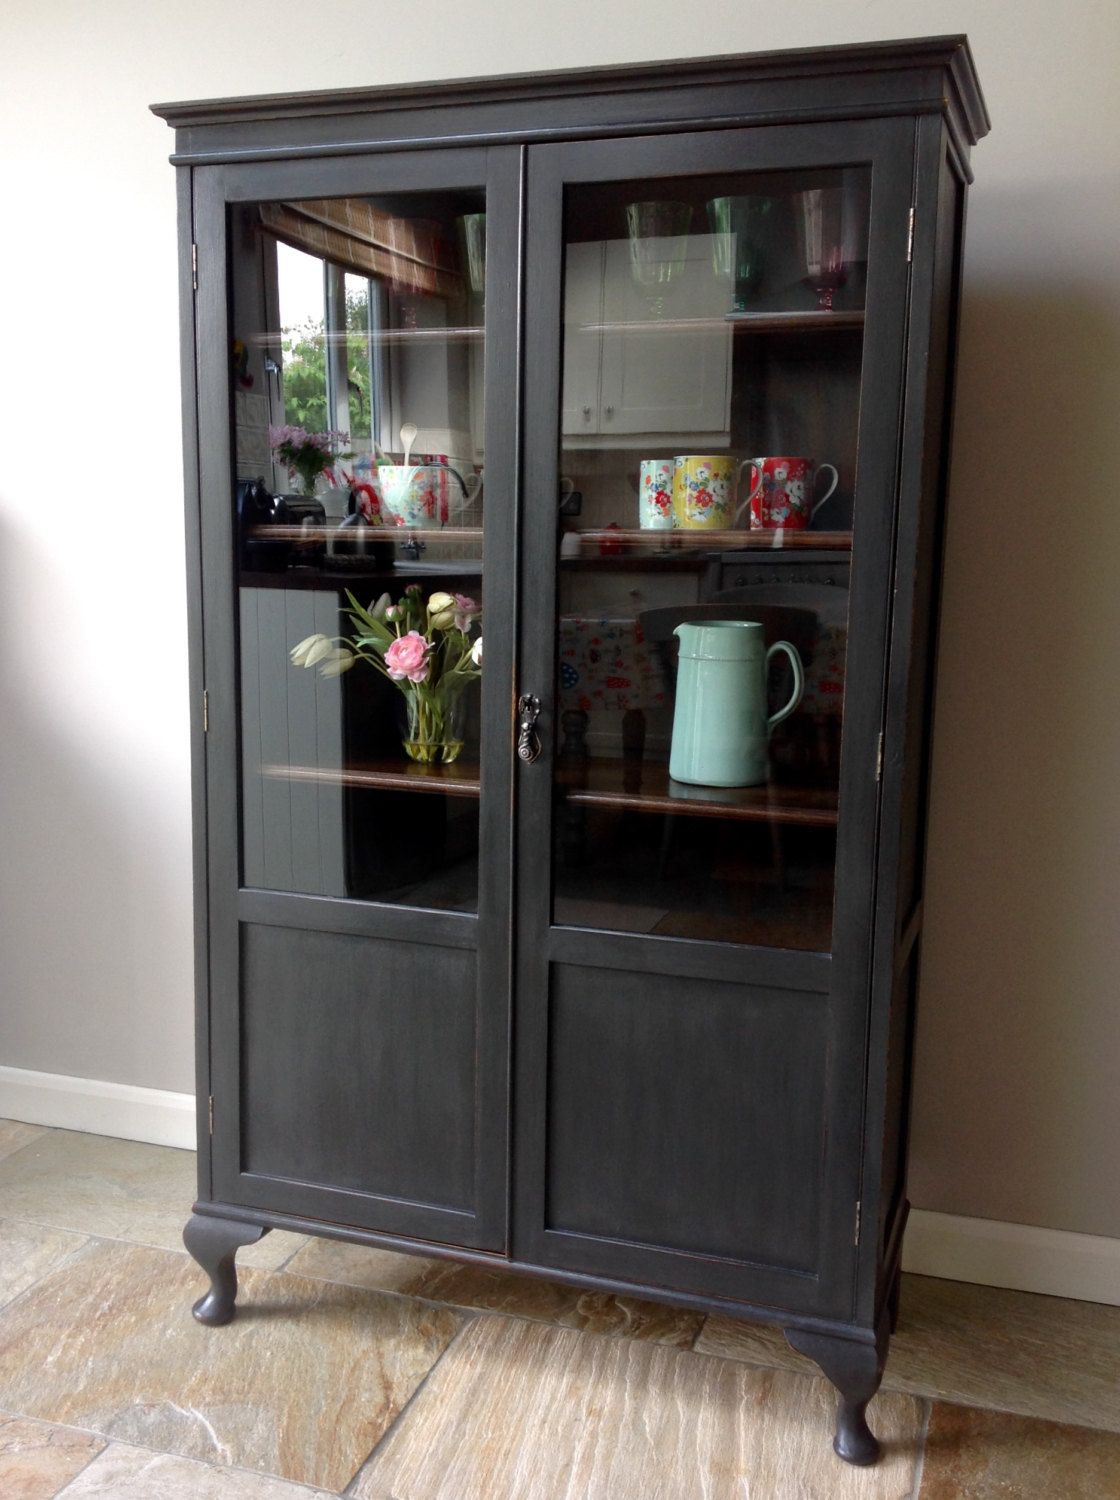 Kitchen Display Cabinet Now Sold Antique Vintage Glazed Display Cabinet Bookcase